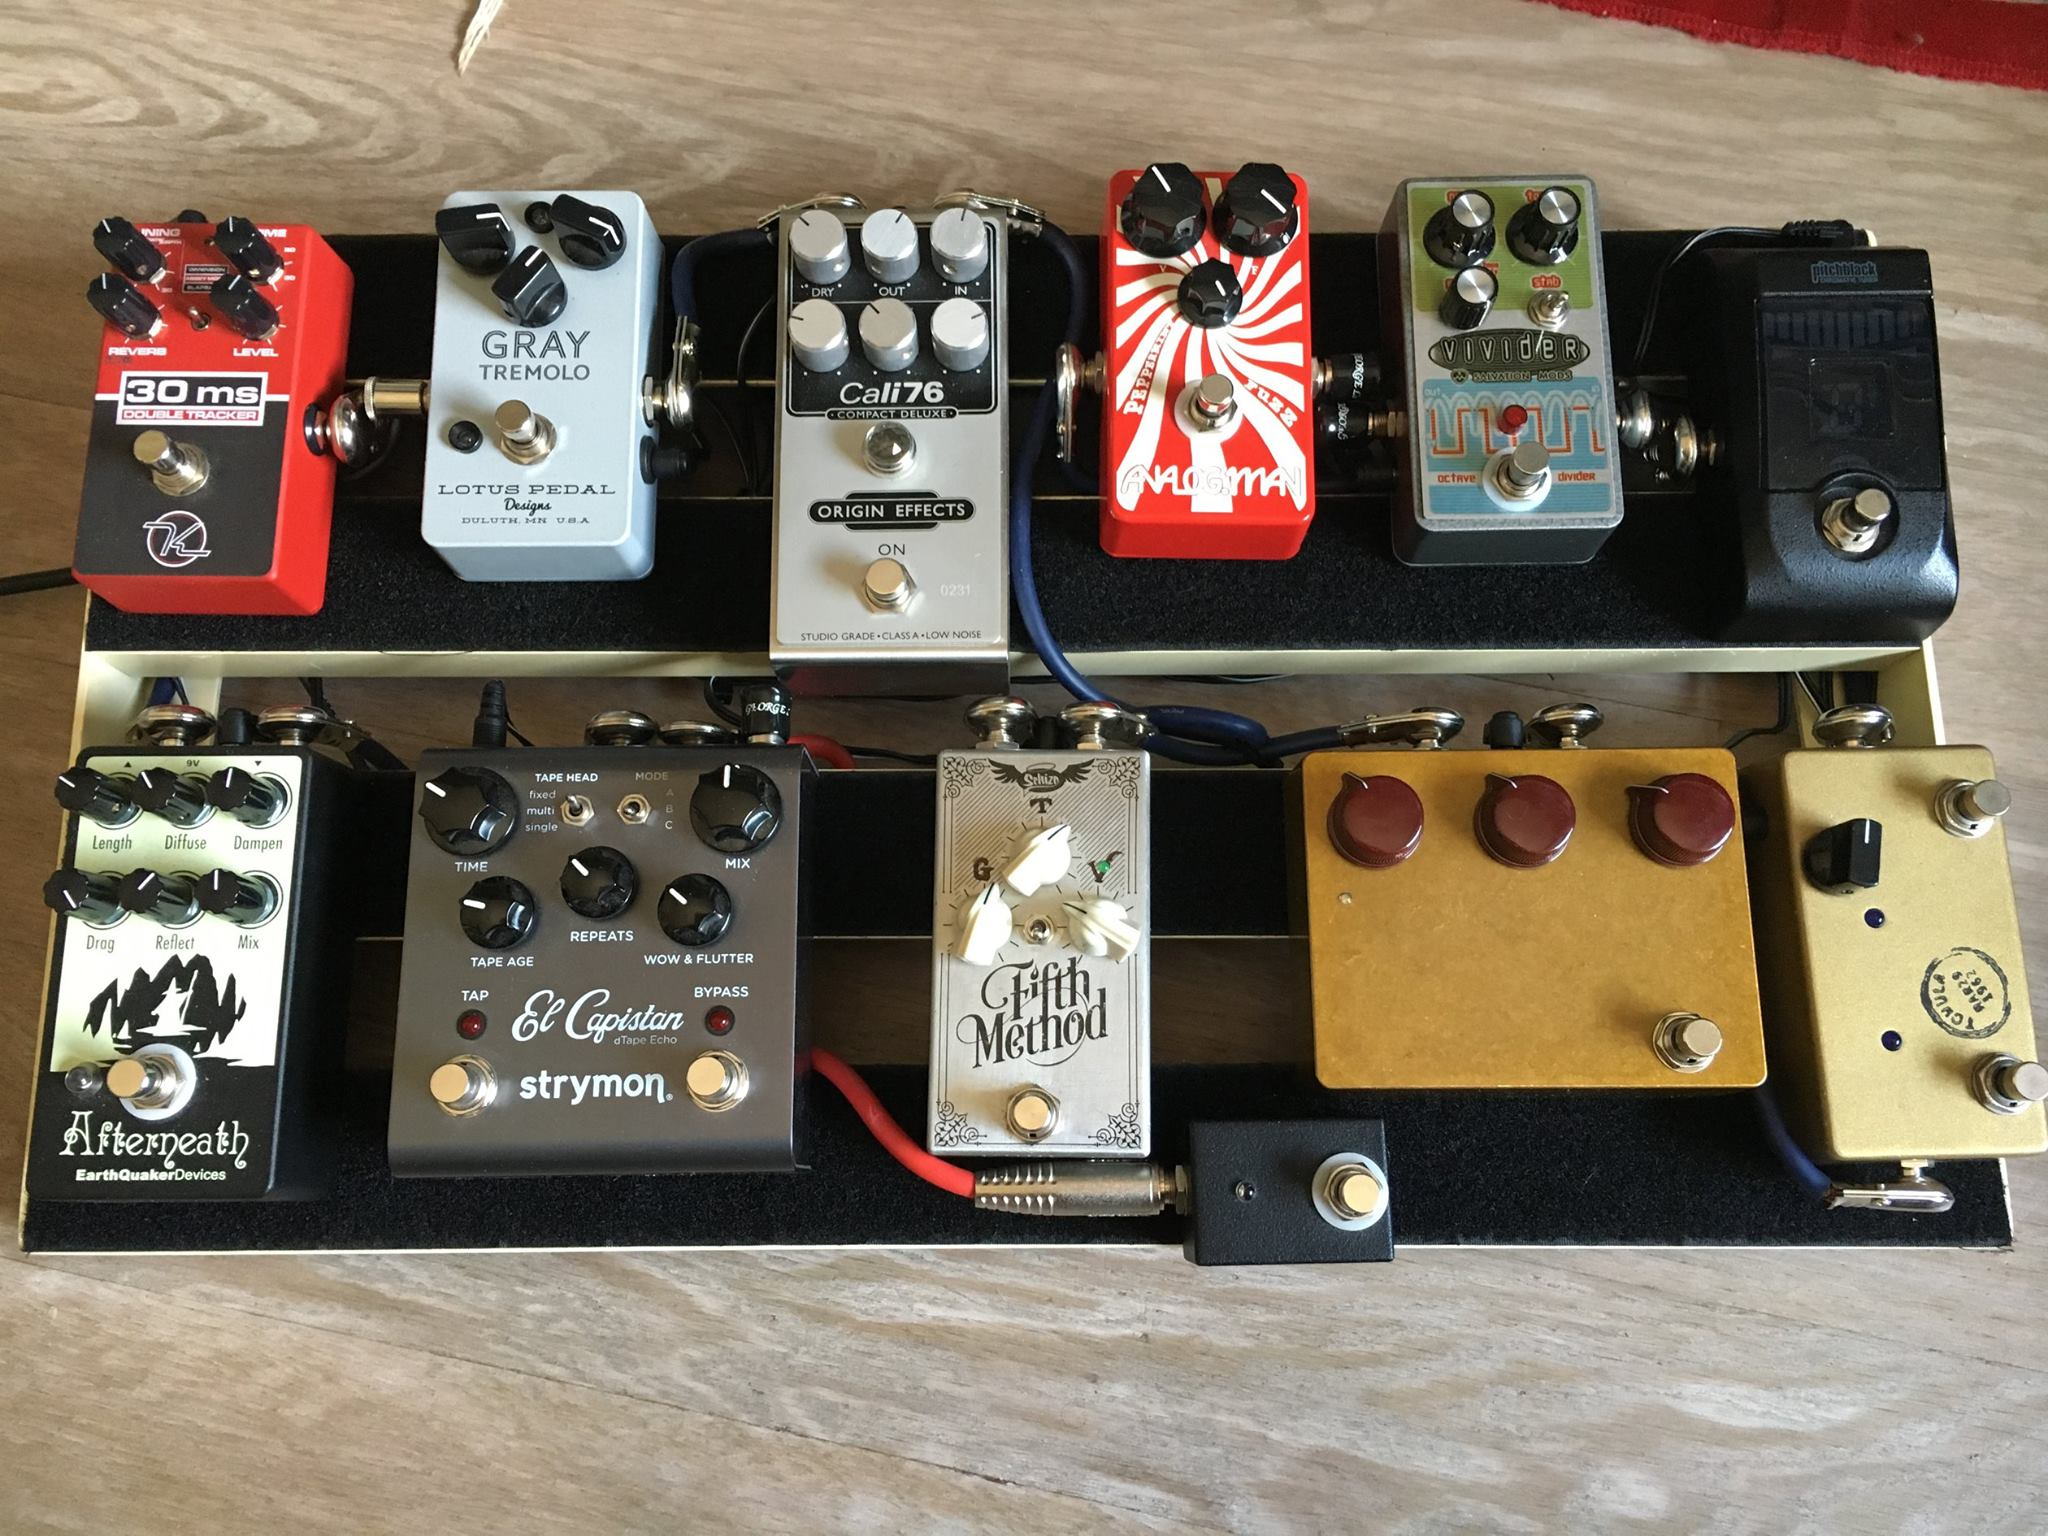 Nicola Di Luca Pedalboard Origin Effects Cali76 Compact Deluxe Compressor Earthquaker Devices Afterneath Strymon El Capistan Schizo Fifth Method Klon Centaur Korg Pitchblack Lovepedal Tchula Salvation mods Vivider Analogman Peppermint Fuzz Lotus Pedal Gray Tremolo Keeley Double Tracker Neil Young